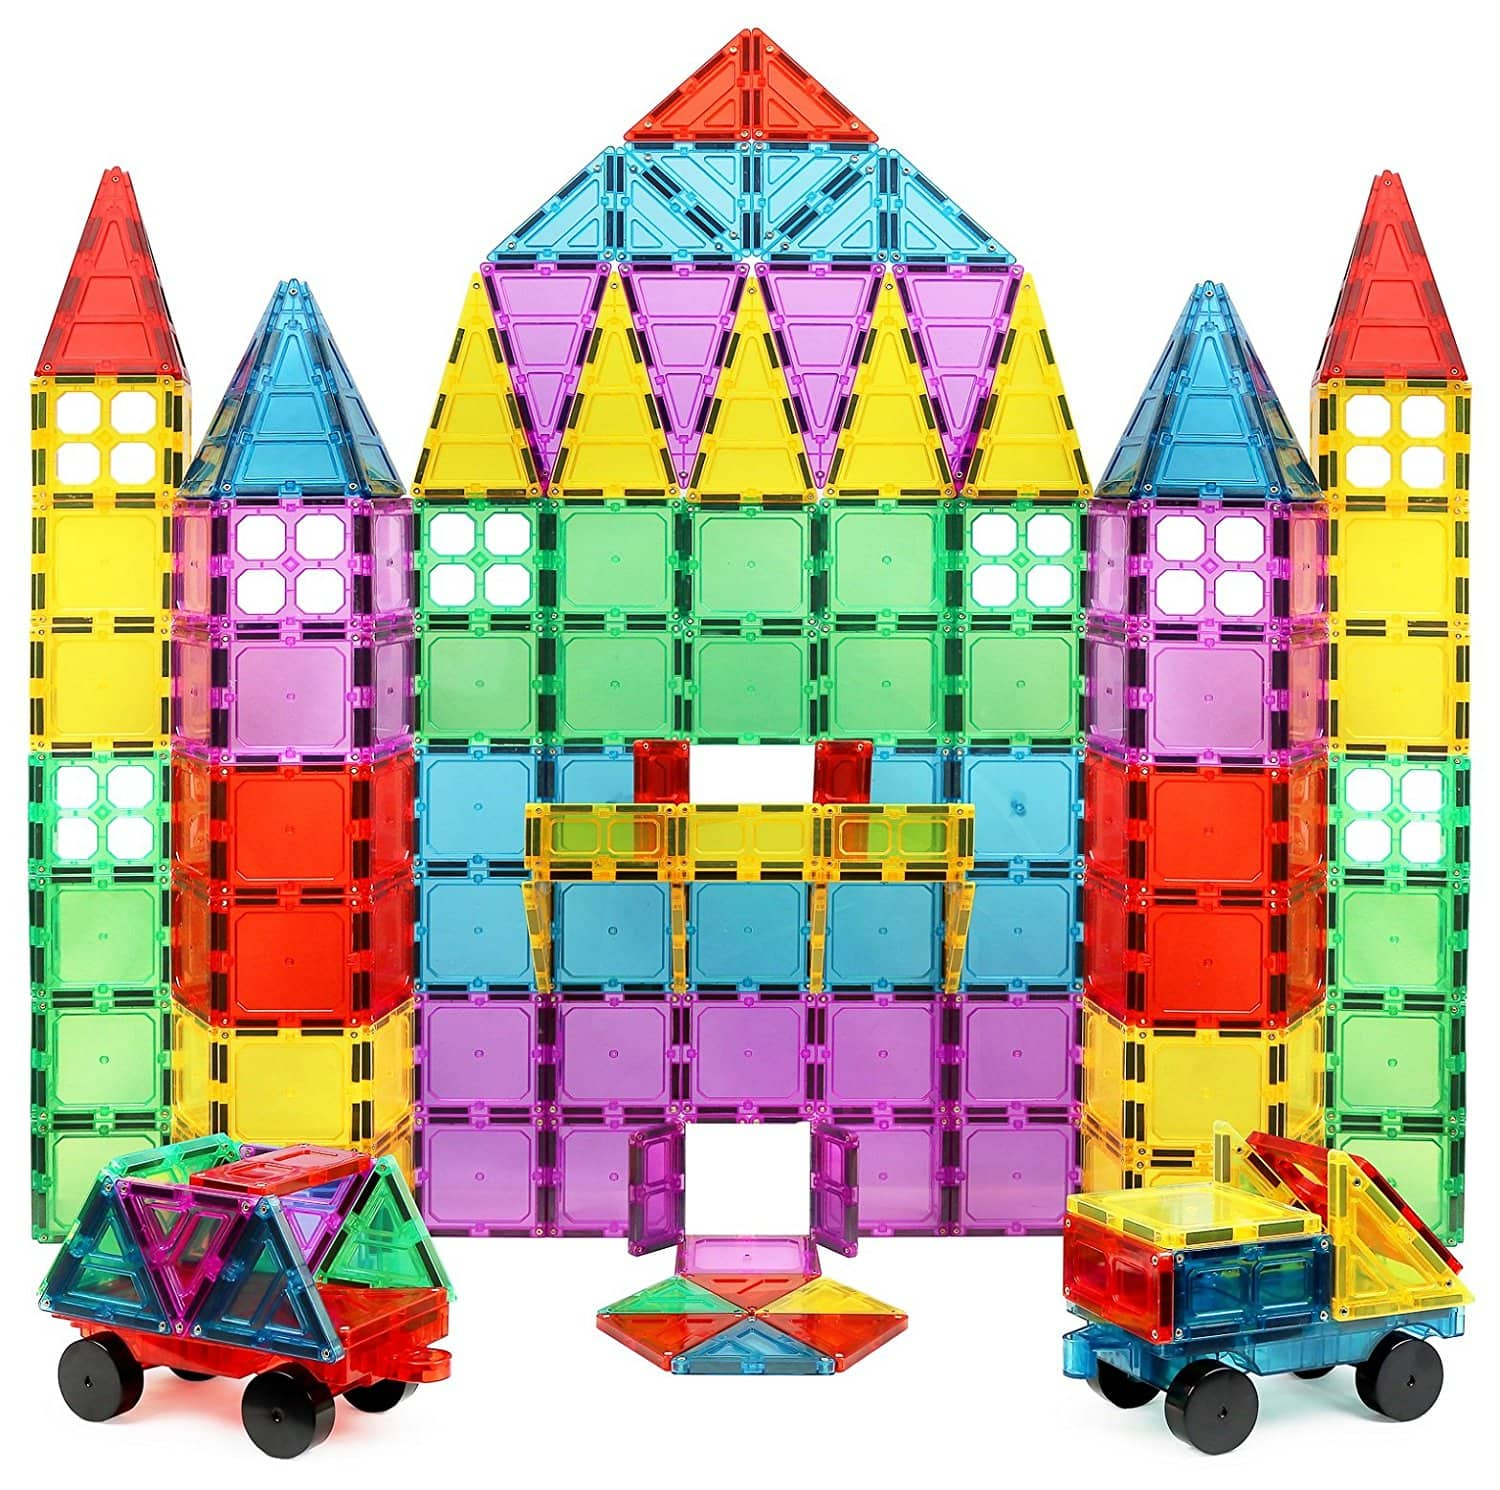 Magnet Build Deluxe 100 Piece 3D Magnetic Tile Building Set Extra Strong Magnets and Super Durable Tiles, Educational, Creative, Assorted Shapes and Vibrant Bright Colors $45.99